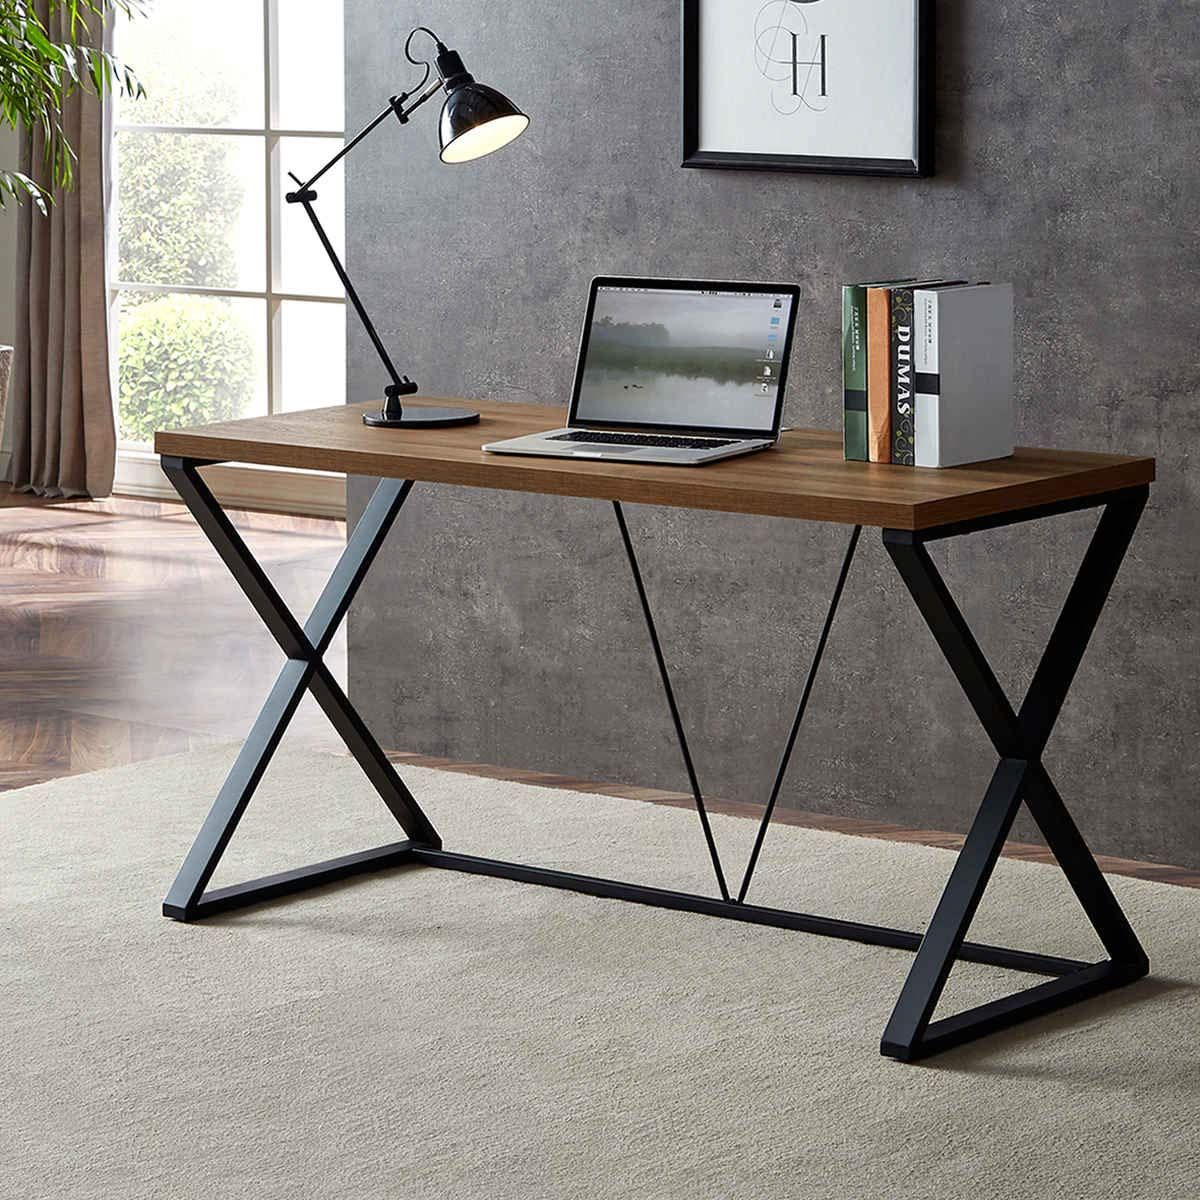 Amazon Com Dyh Industrial Rustic Computer Desk Wood And Metal X Writing Desk Writing Table Fo Rustic Computer Desk Wood And Metal Desk Wood Furniture Design